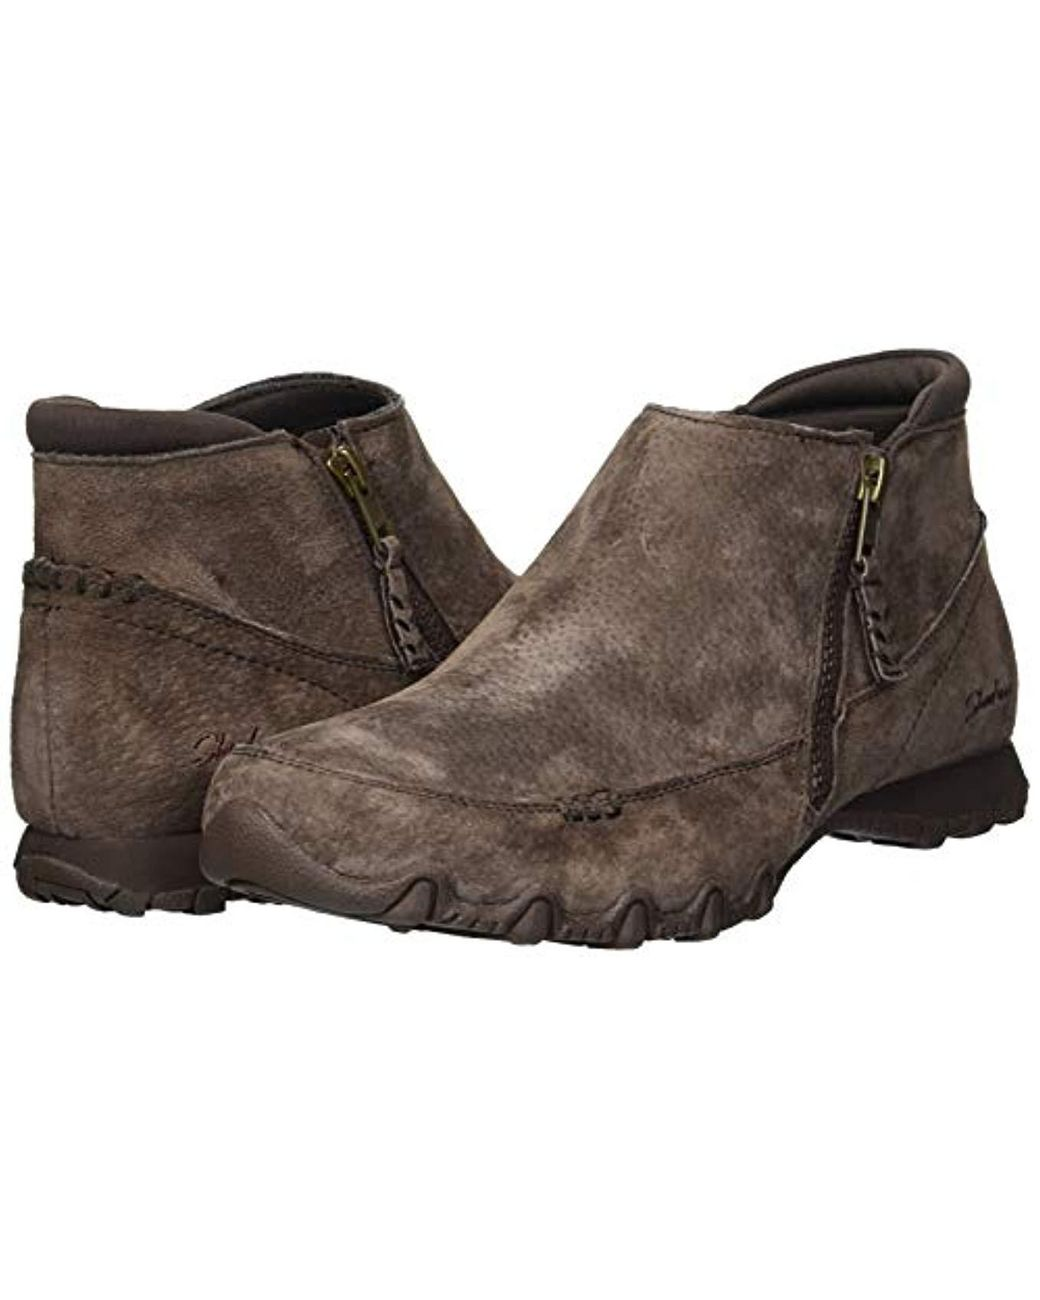 43c1f25391a52 Women's Brown Bikers-zippiest-moc-toe Outside Zip Bootie Ankle Boot,  Chocolate, 6 M Us